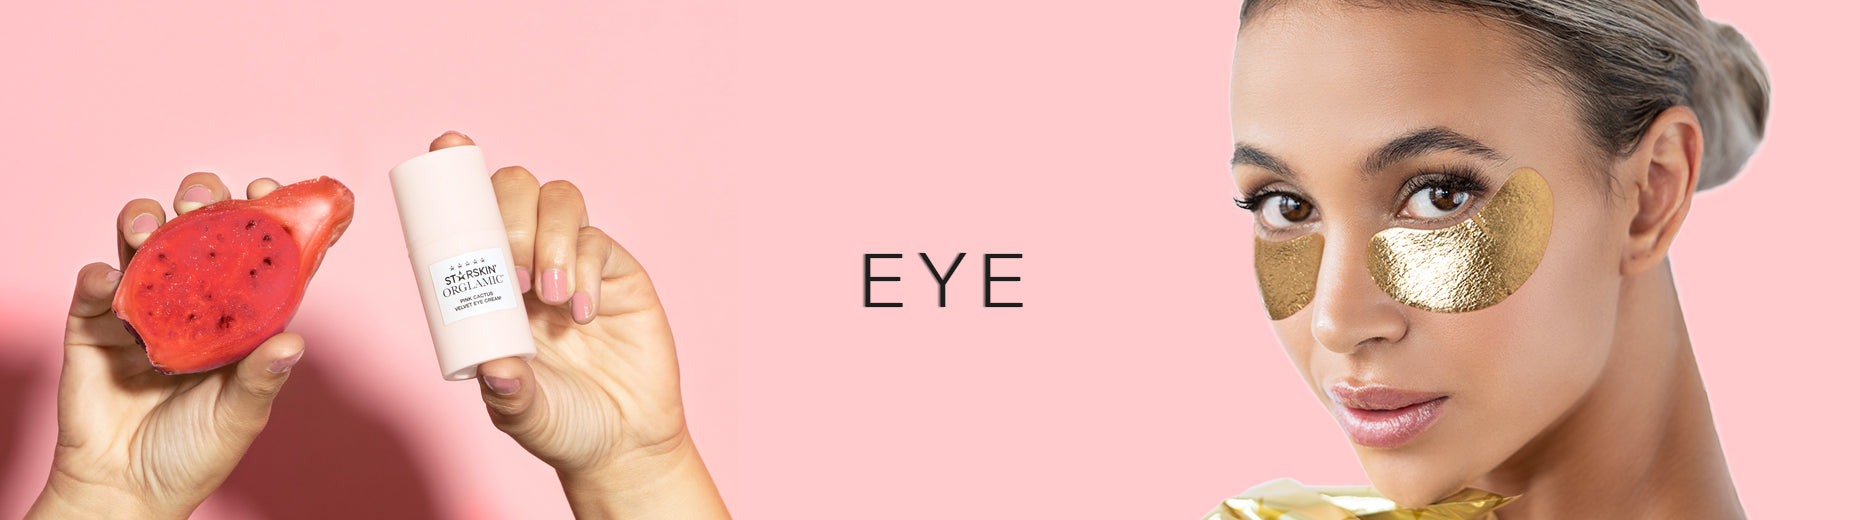 banner eye model wearing vip gold eye patches pink cactus fruit and pink cactus velvet eye creameye c